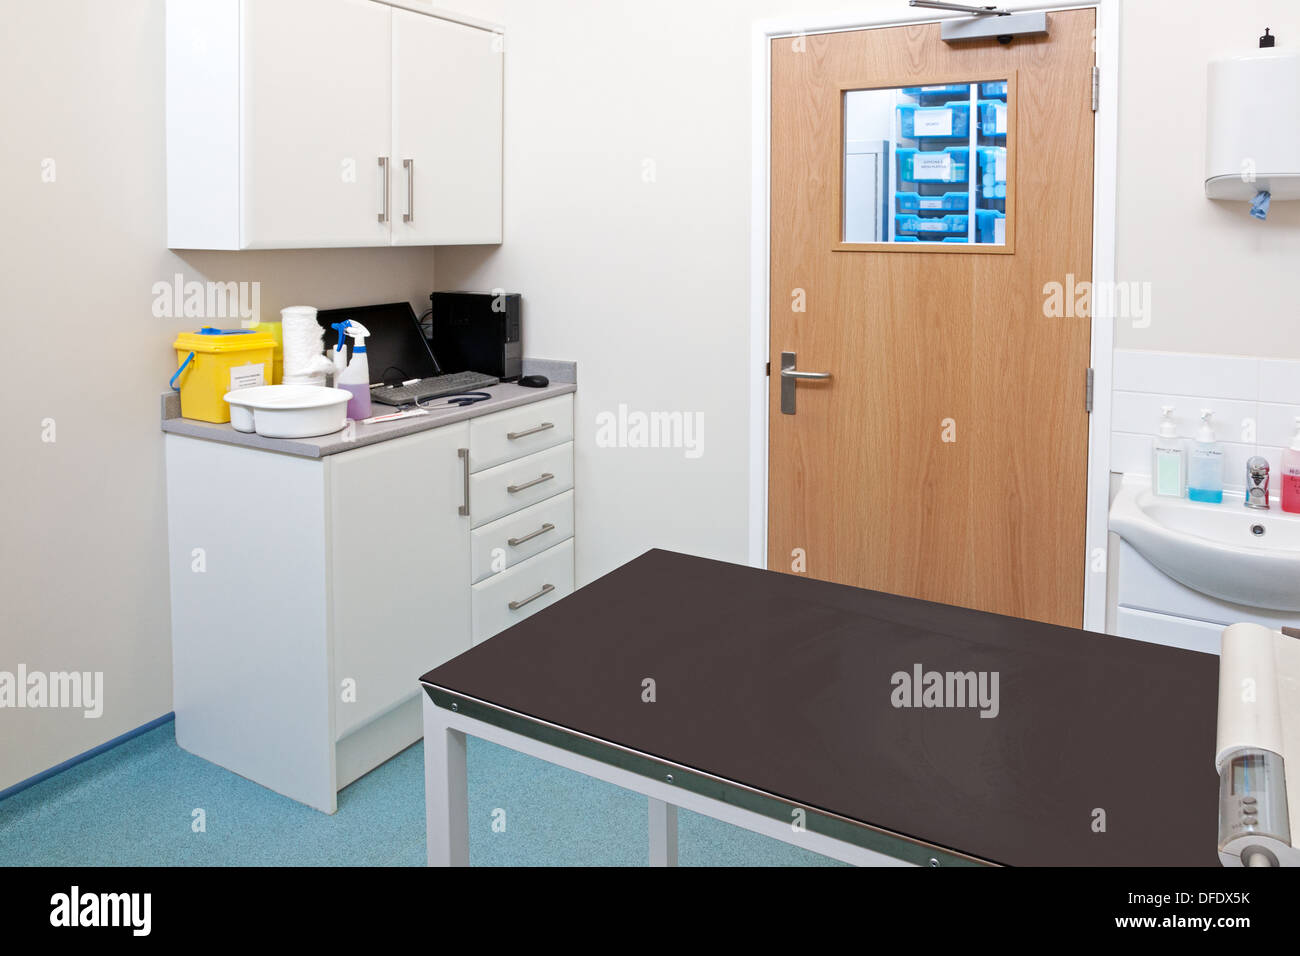 Vets examination room in a veterinary practice - Stock Image